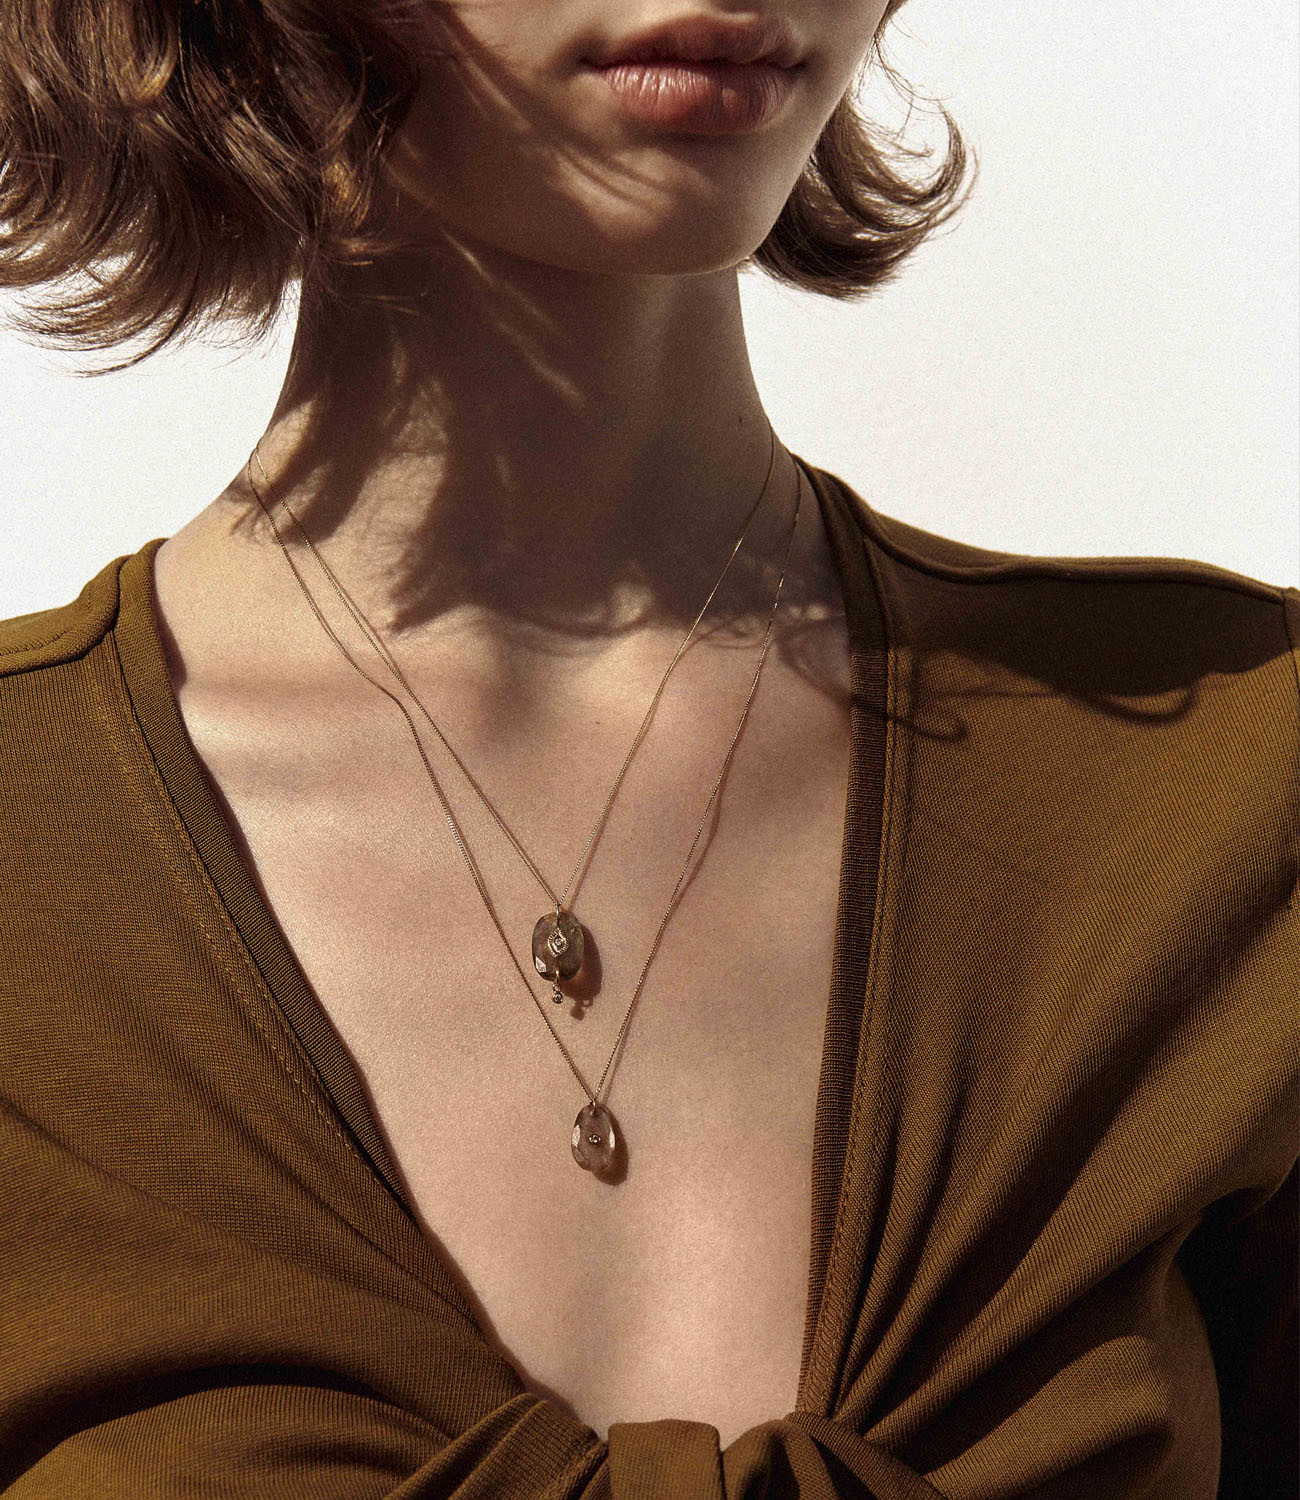 Pascale Monvoisin Necklace ORSO N°1 MOONSTONE